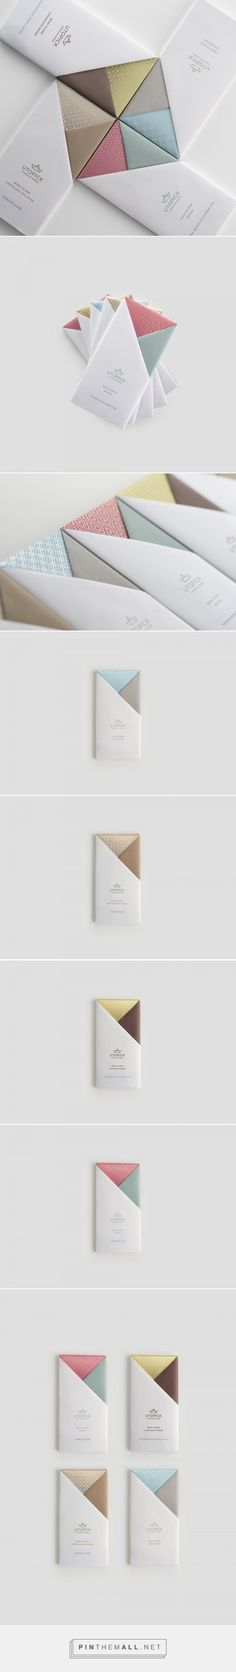 A Lovely Chocolate Bar that's Packaged with Origami / Designed by Lavernia & Cienfuegos(Chocolate Bars Packaging) Web Design, Label Design, Creative Design, Logo Design, Package Design, Origami Design, Packaging Design Inspiration, Graphic Design Inspiration, Chocolate Packaging